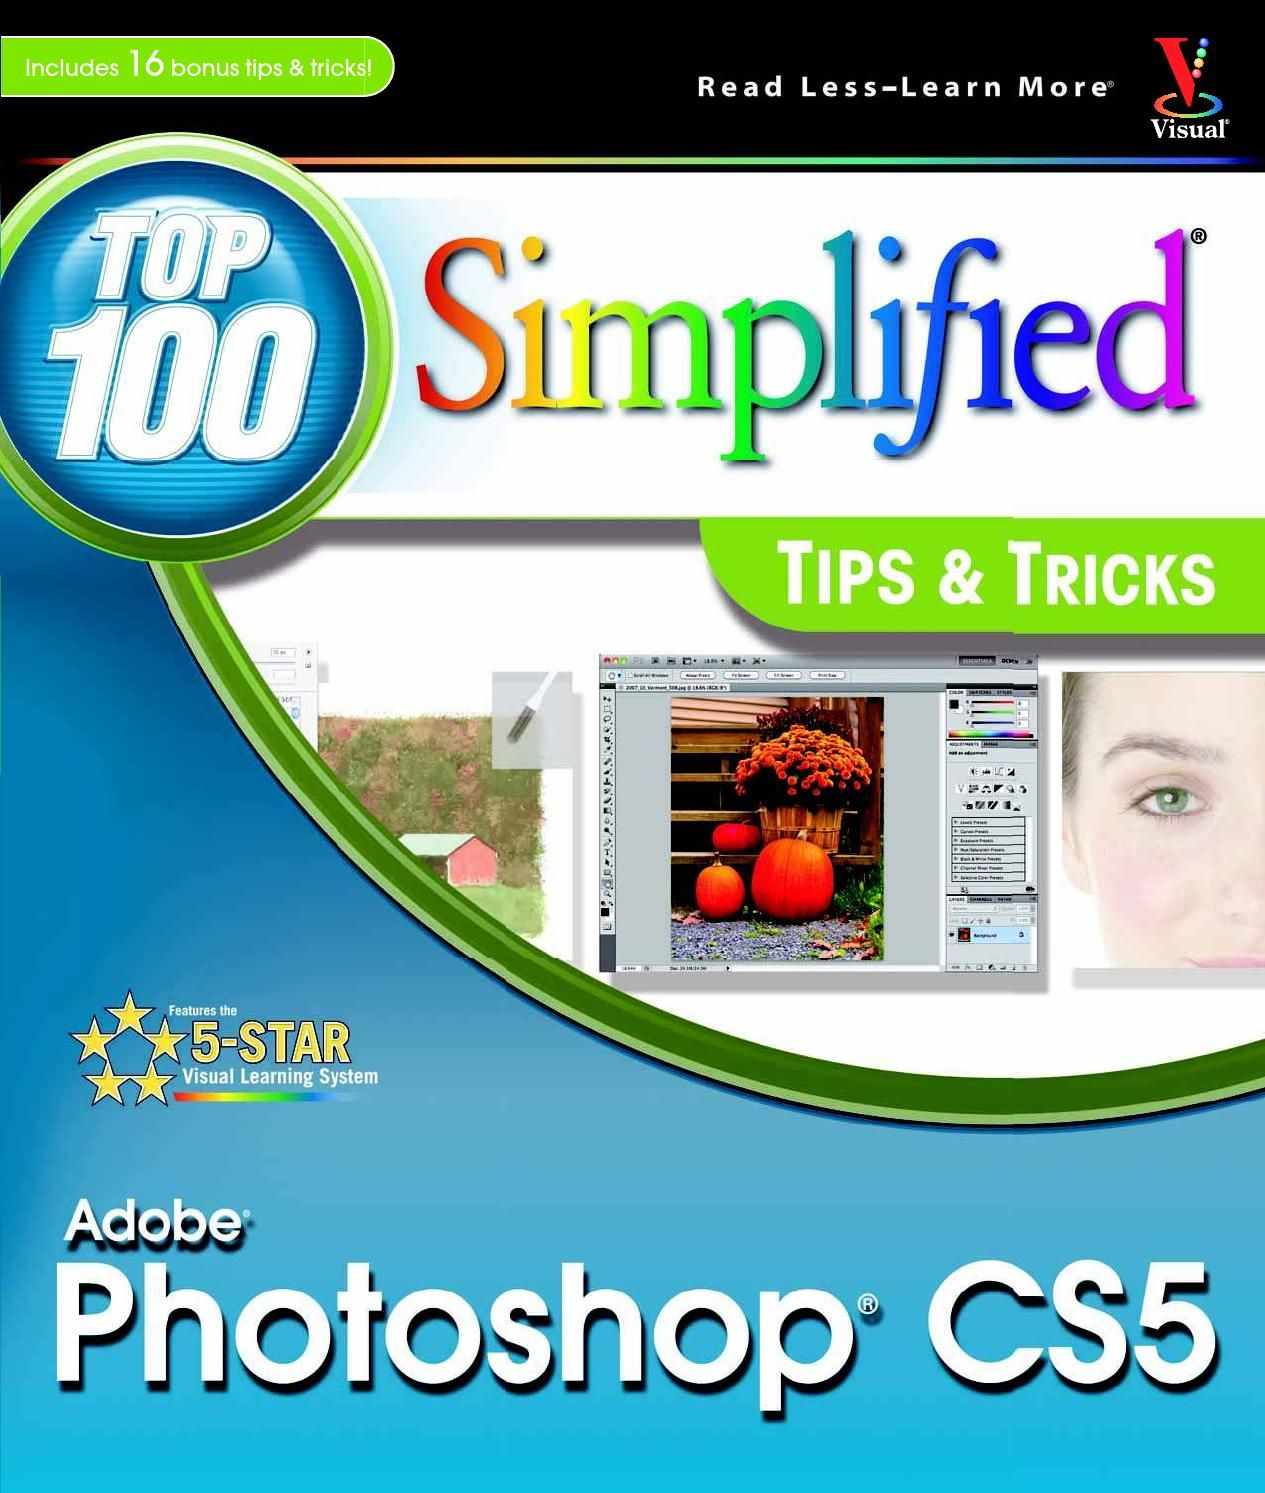 Adobe photoshop cs5 top 100 simplified tips and tricks photoshop adobe photoshop cs5 top 100 simplified tips and tricks baditri Images